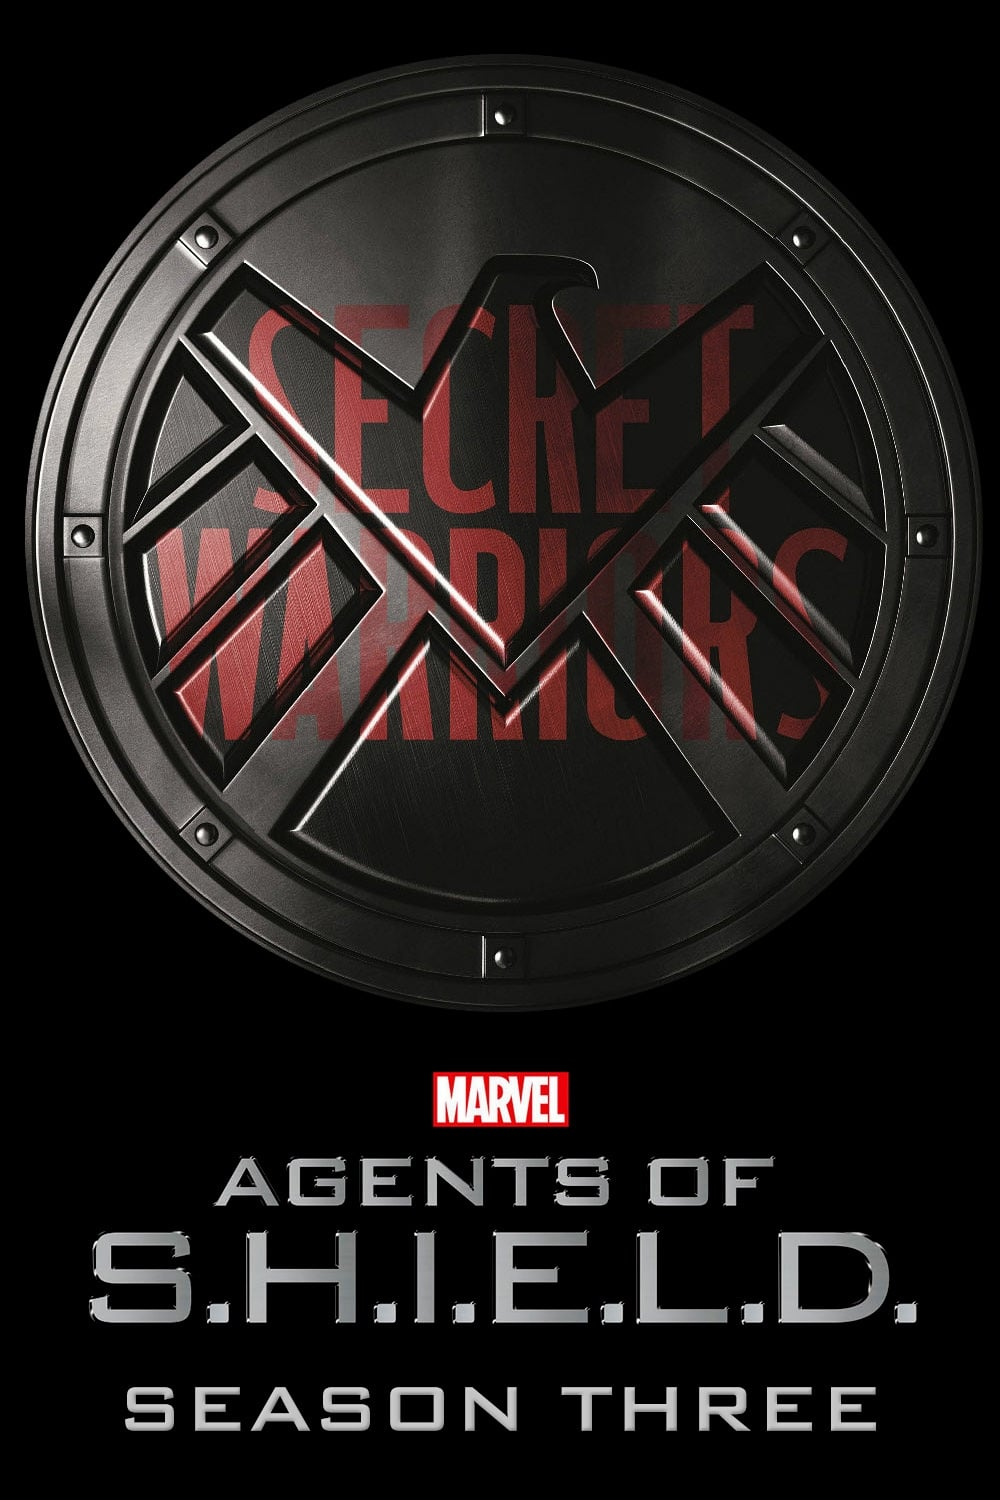 Baixar Agents of S.H.I.E.L.D. 3° Temporada Dublado via Torrent